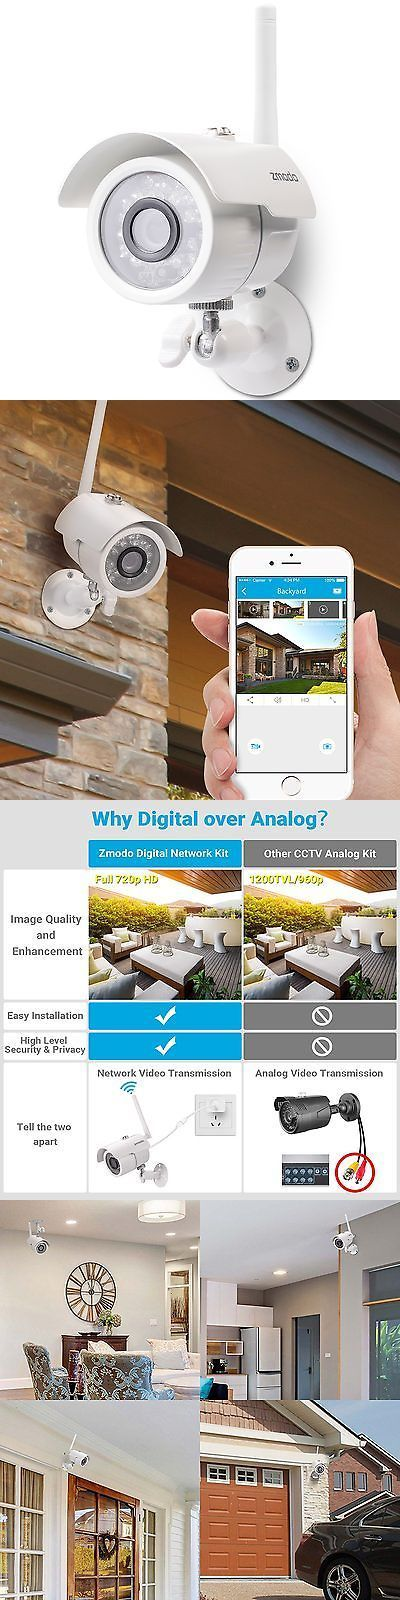 Security Cameras: Zmodo 720P Hd Smart Wireless Surveillance Camera Wifi Outdoor Security Camera -> BUY IT NOW ONLY: $38.6 on eBay!